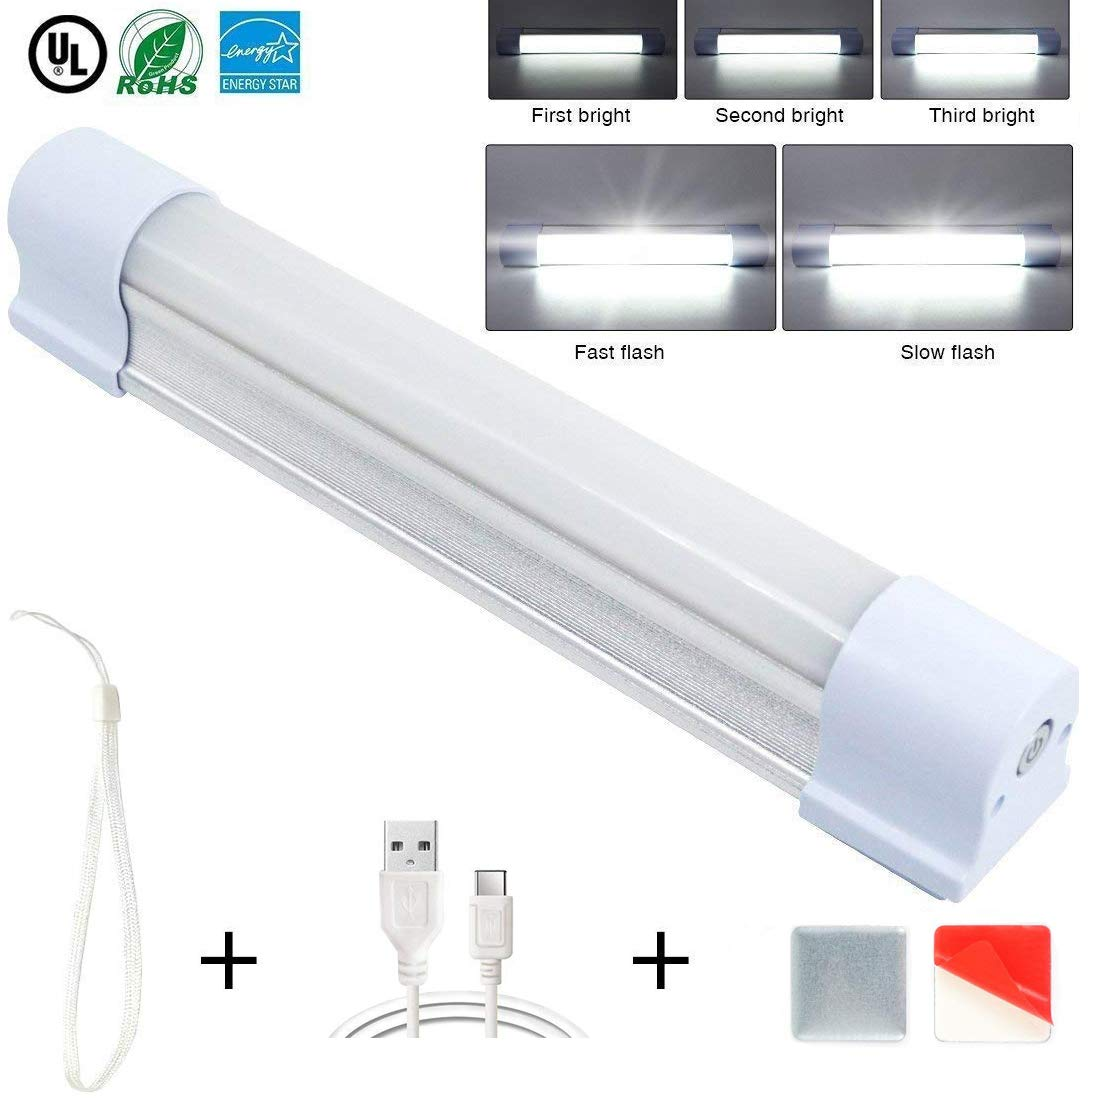 LETOUR LED Tube Magnetic Light Work Lights 60W 4000Lumens 5 Lighting Options Camping Lantern USB Rechargeable Portable Battery Powered Lights with 4 Magnets Endurance for 60 Hours SHUOFENG